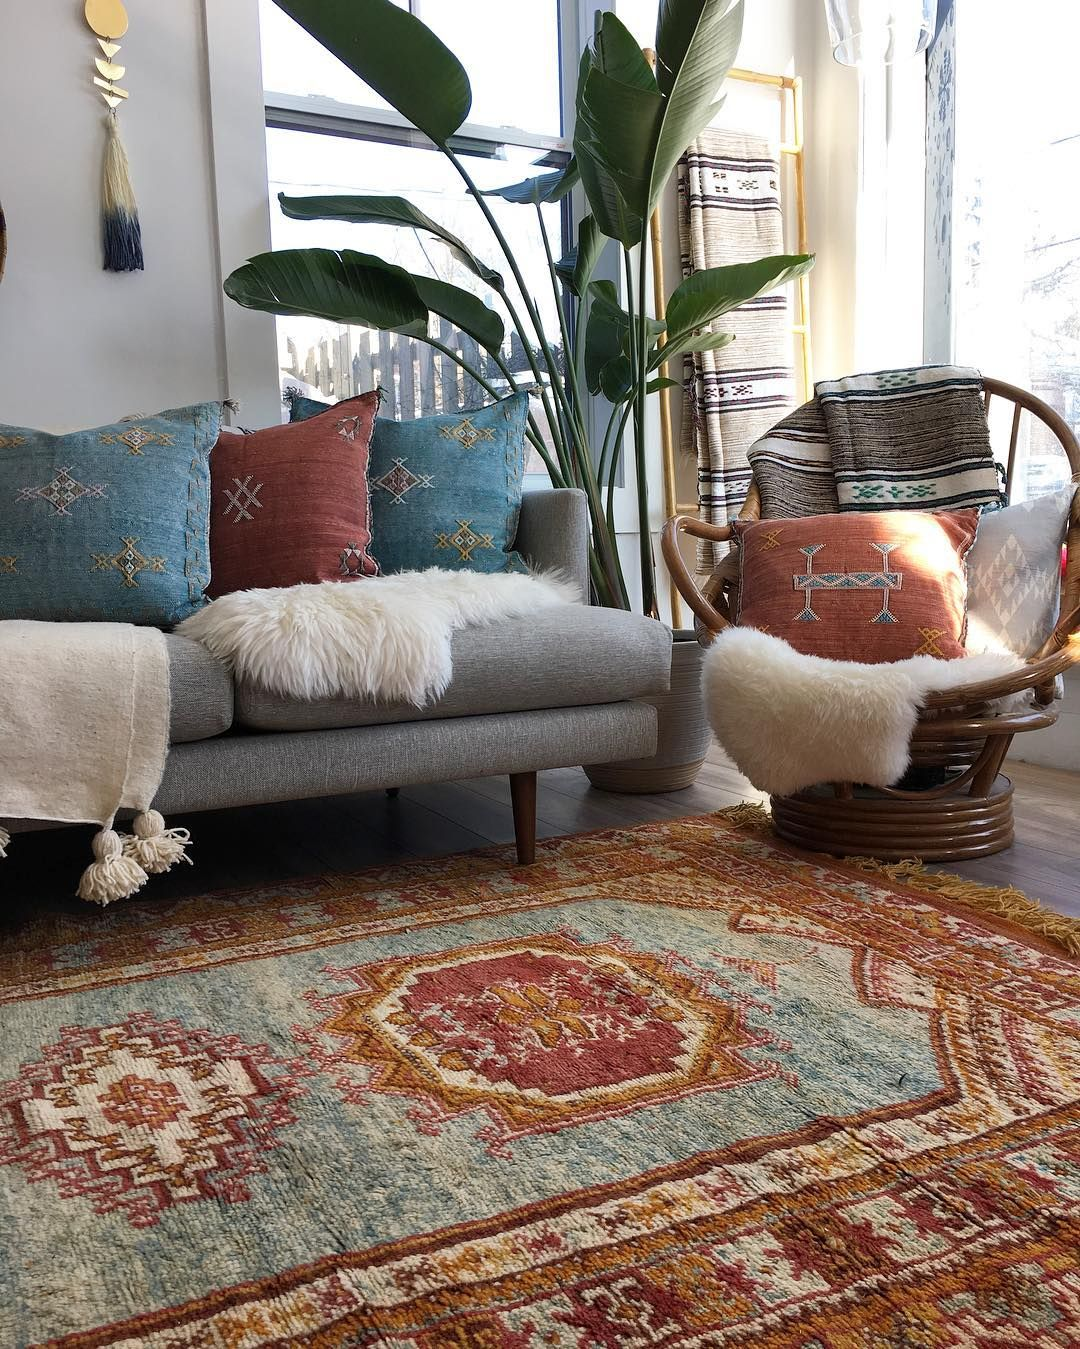 living room, wooden floor, patterned rug, grey sofa, rattan chair, white wall, plants